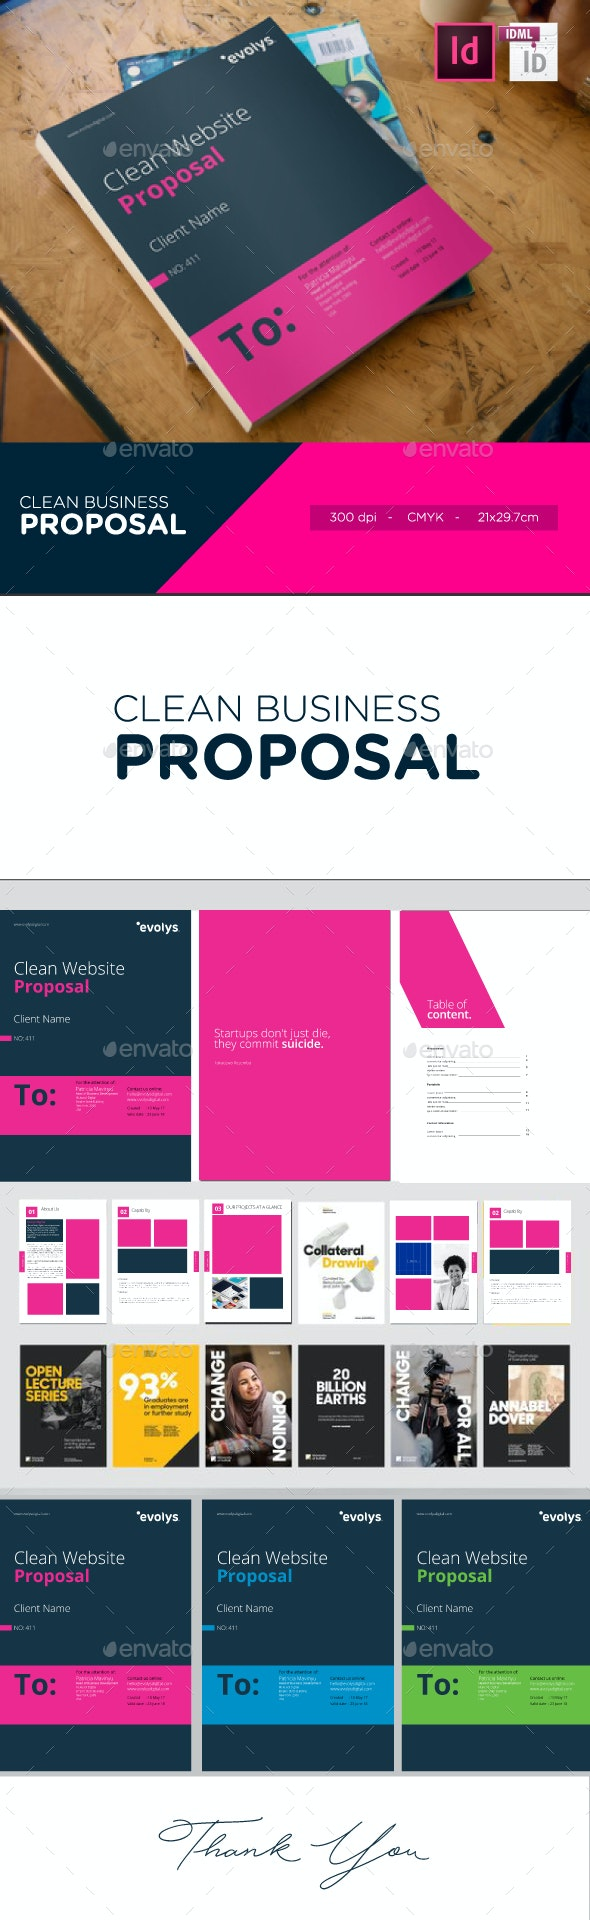 Clean Modern Corporate Website Design Proposal - Proposals & Invoices Stationery